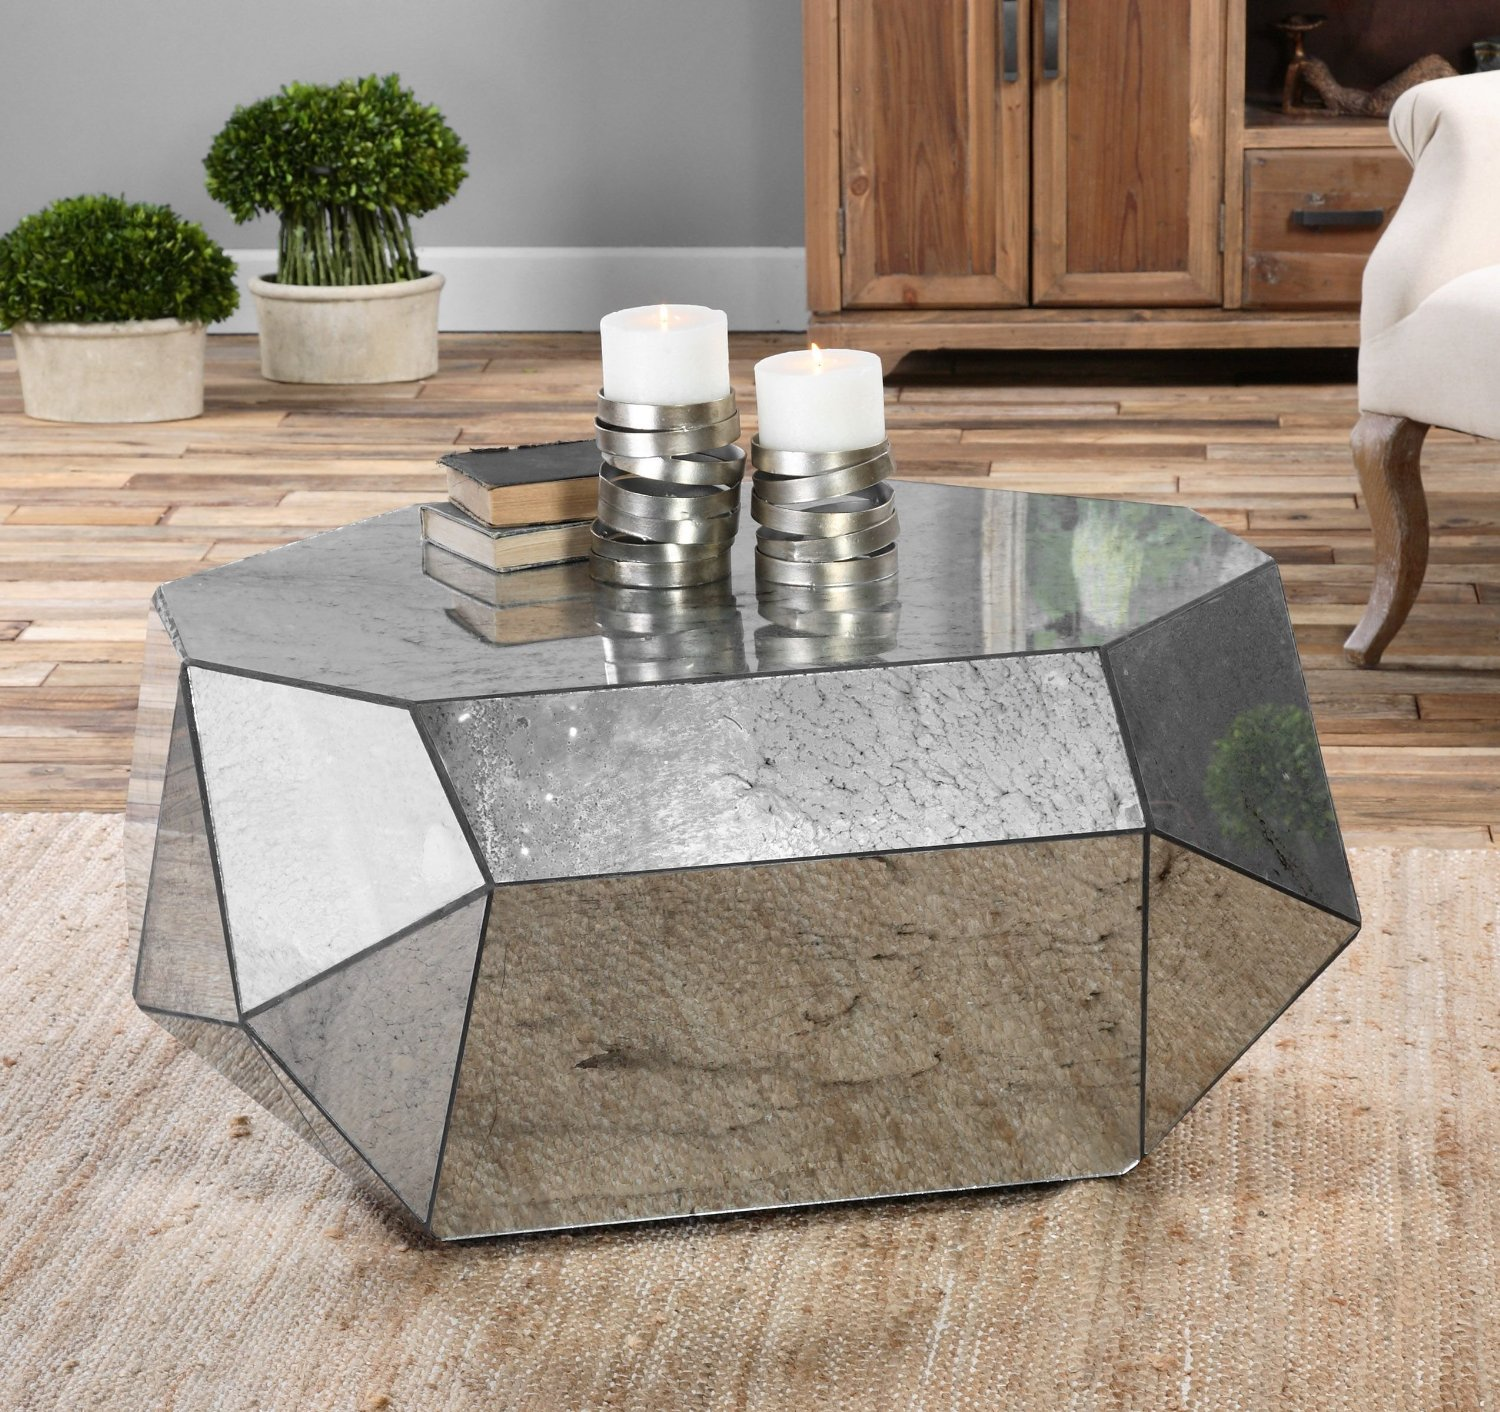 9 geometric coffee tables to perfectly align your life